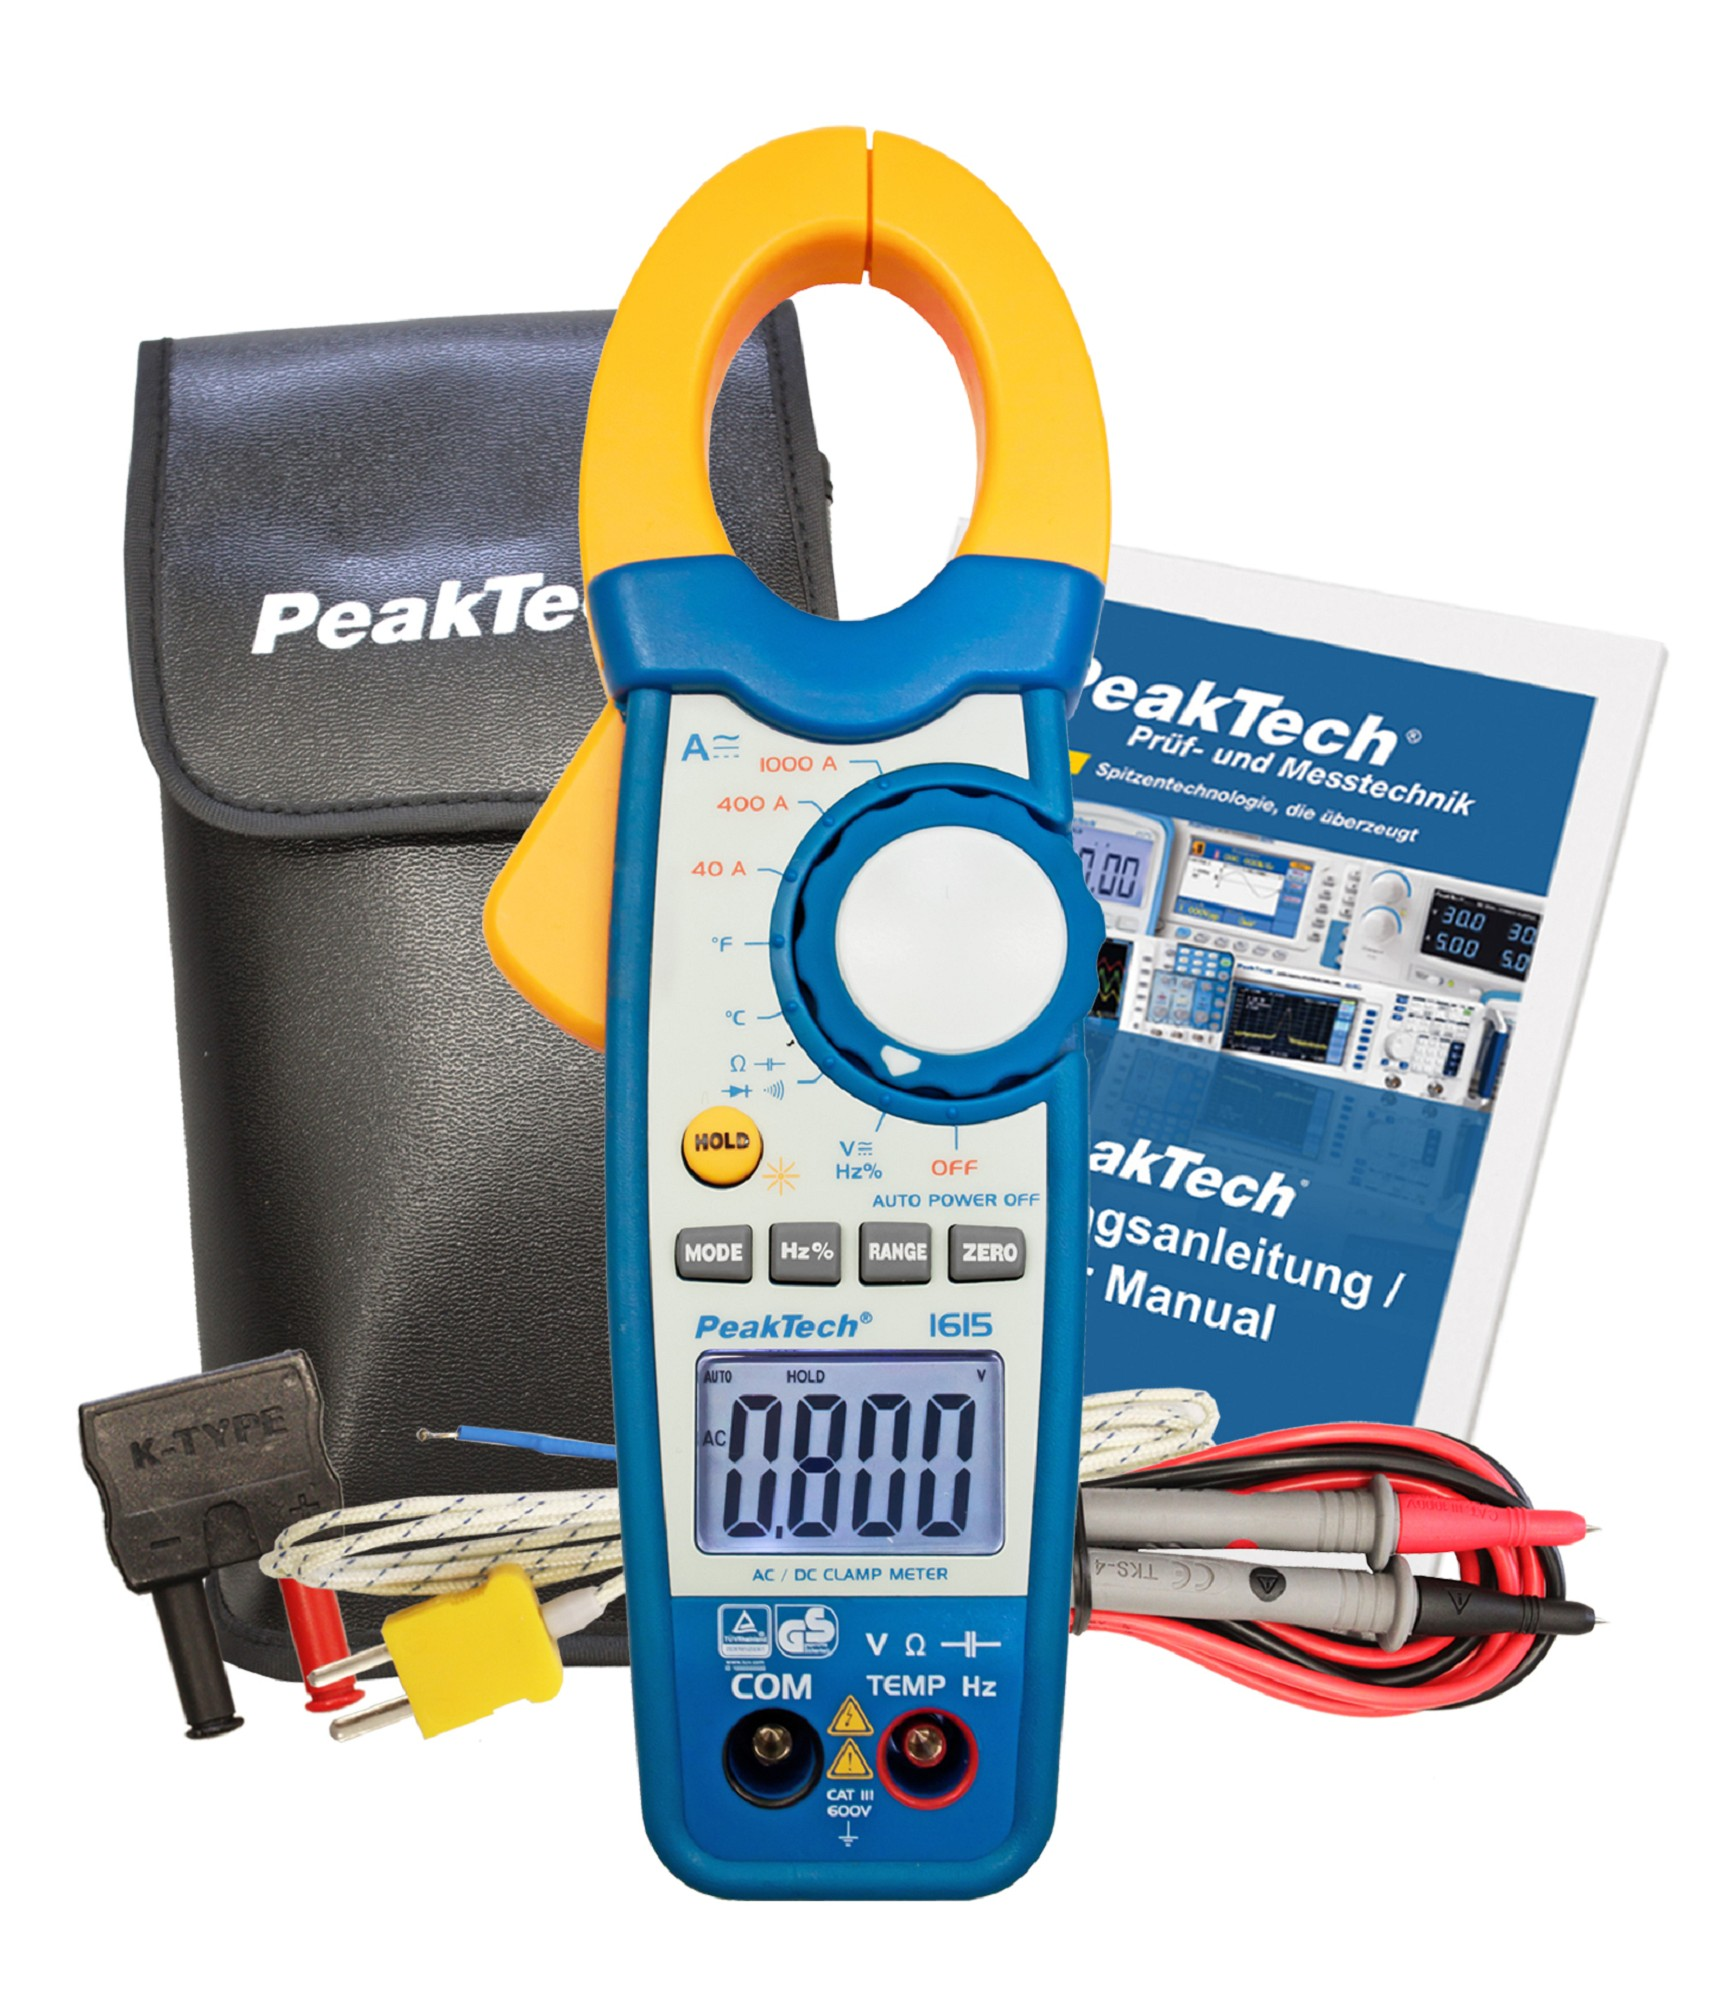 «PeakTech® P 1615» Clamp meter 4,000 counts 1000 A AC/DC